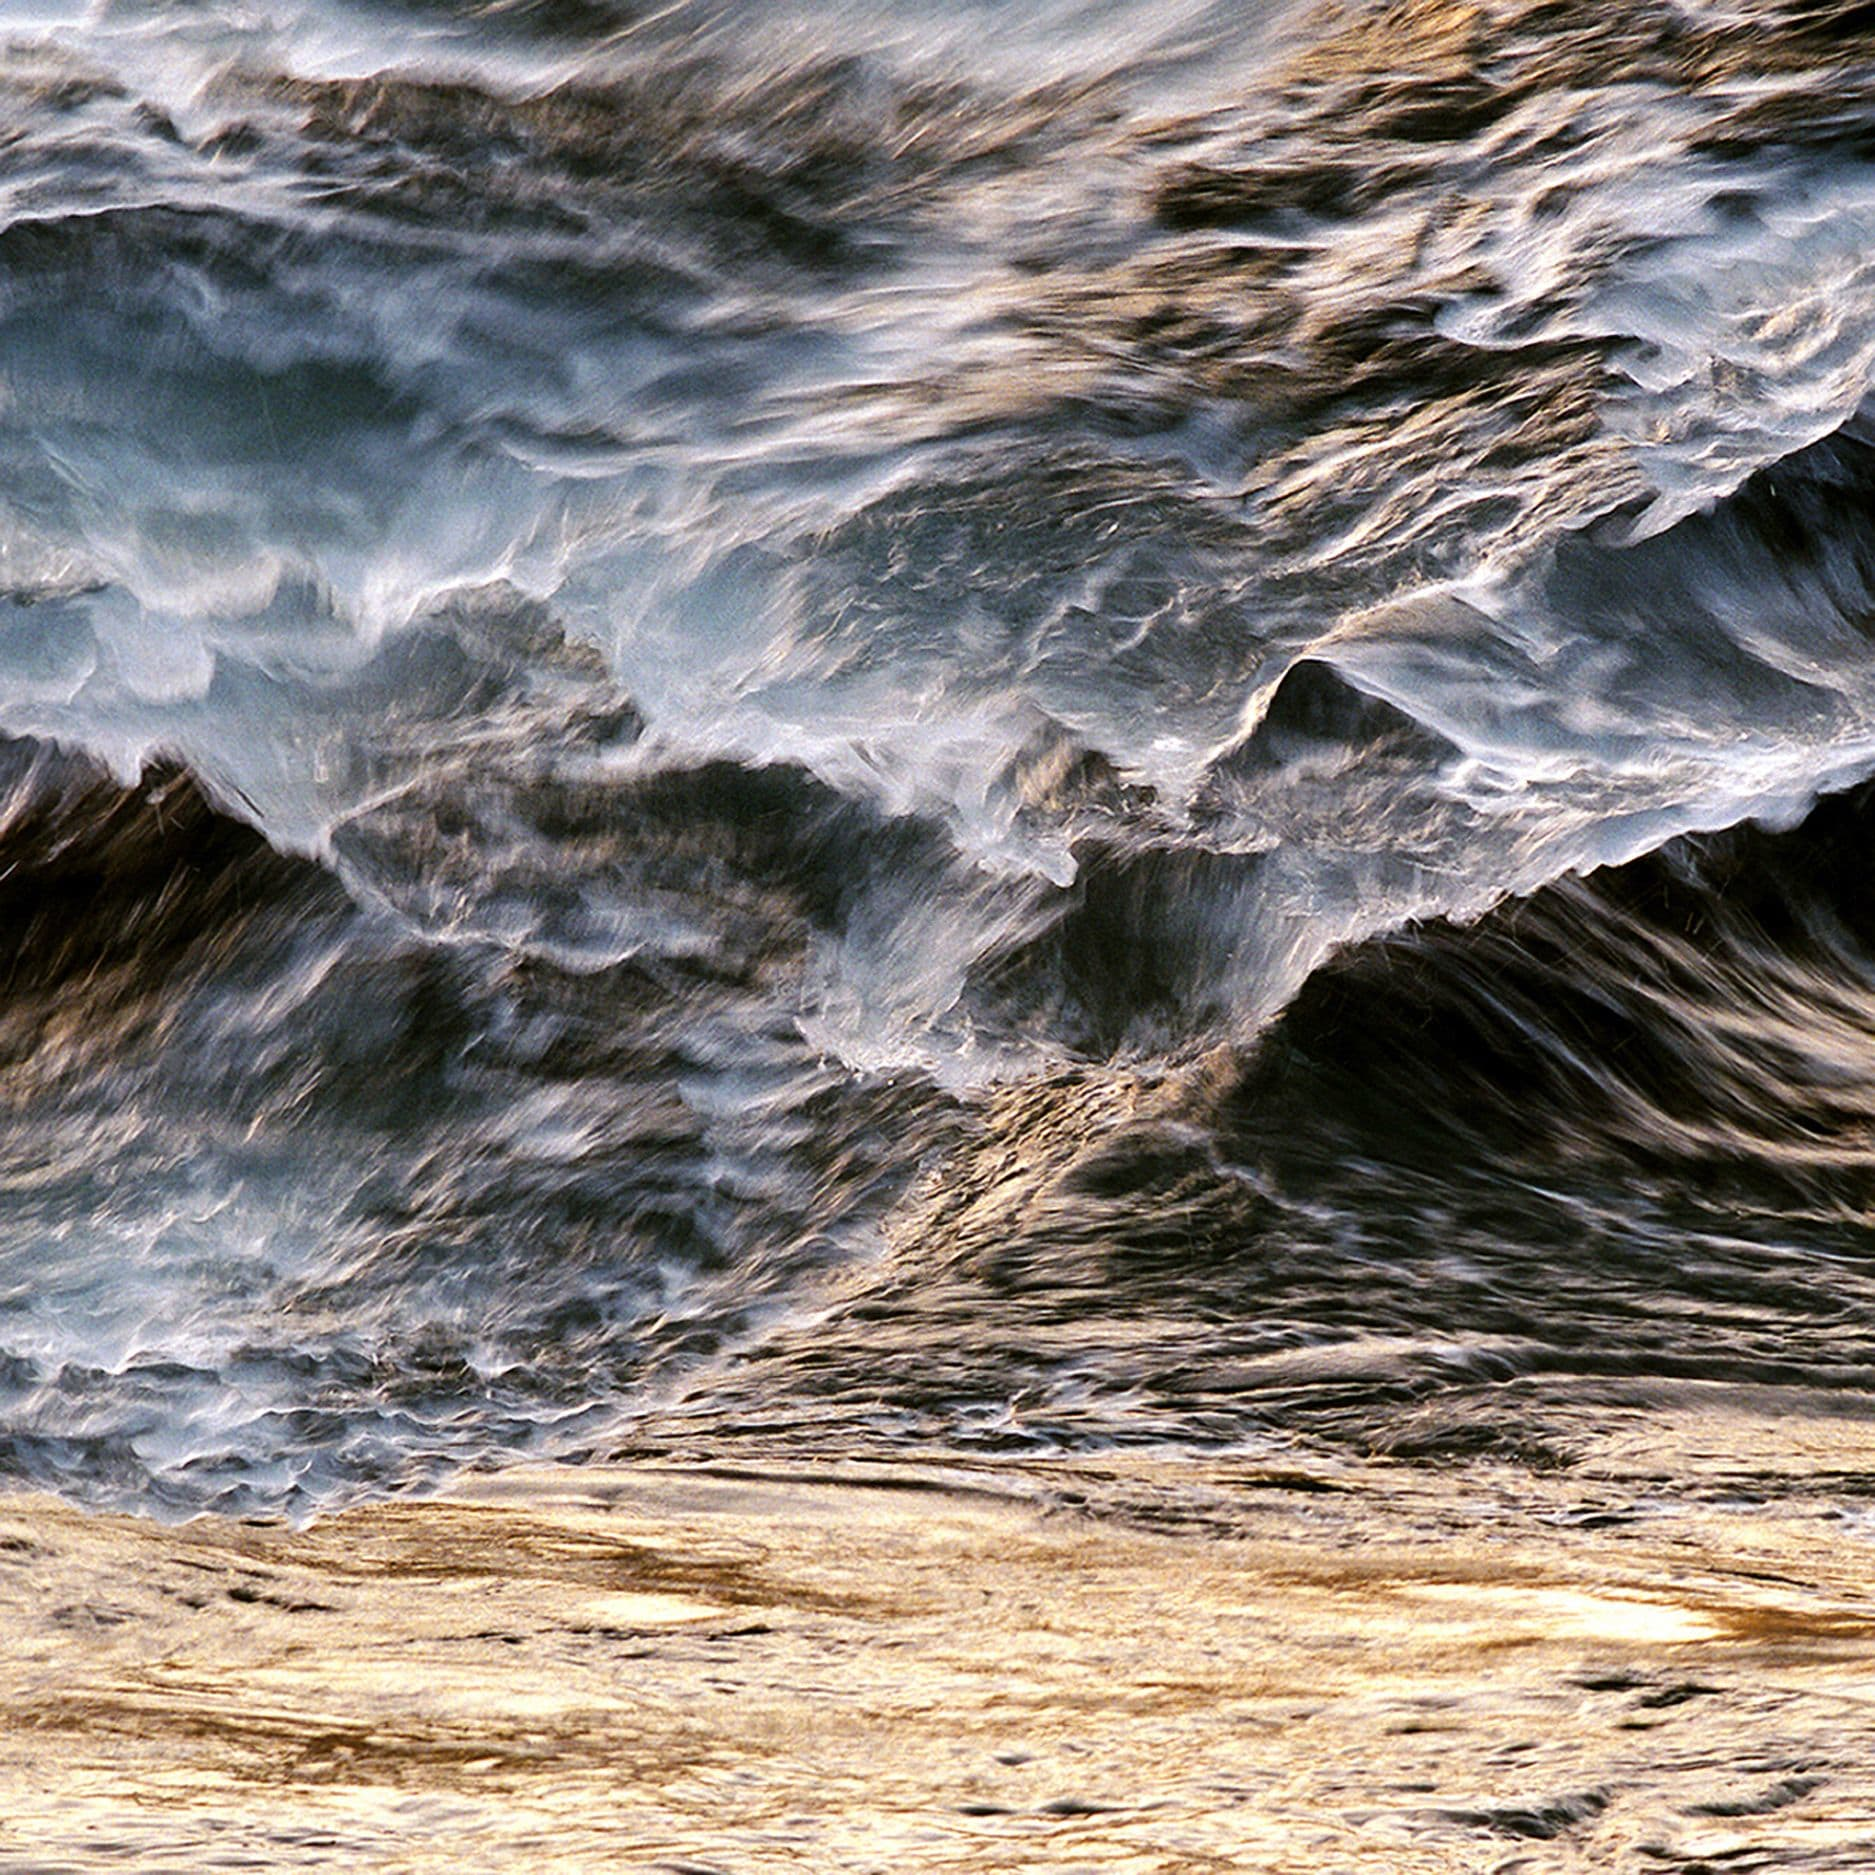 Photography by Tabitha Soren seen at Private Residence, Malibu - Panic Beach - Oceans, Waves